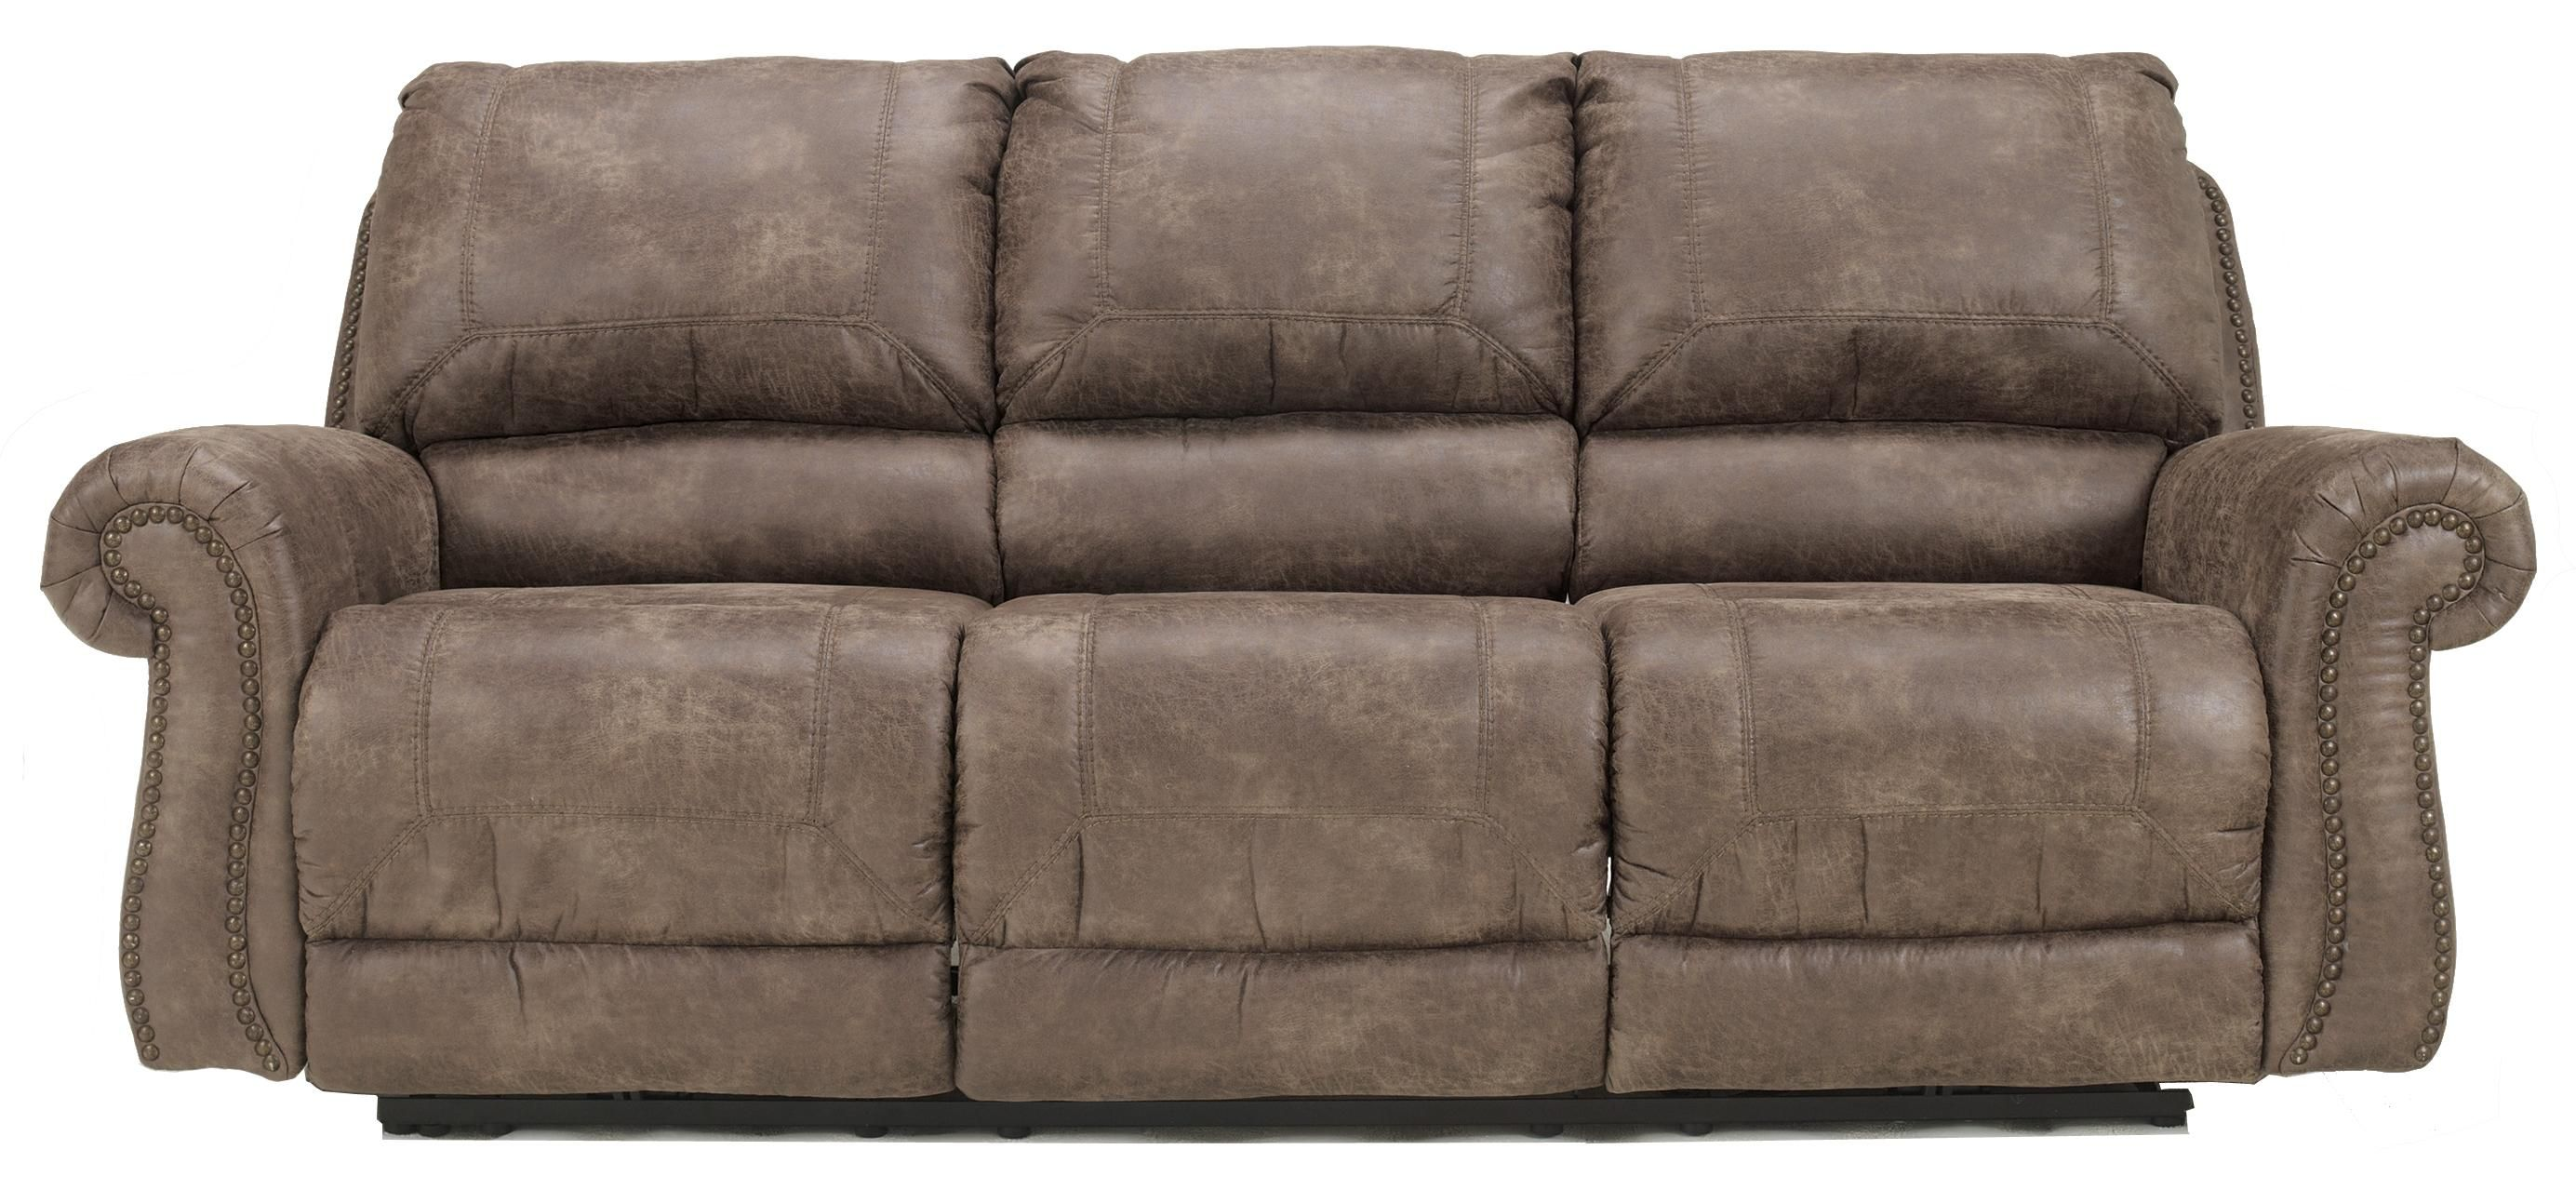 Oberson Gunsmoke Reclining Sofa By Signature Design By